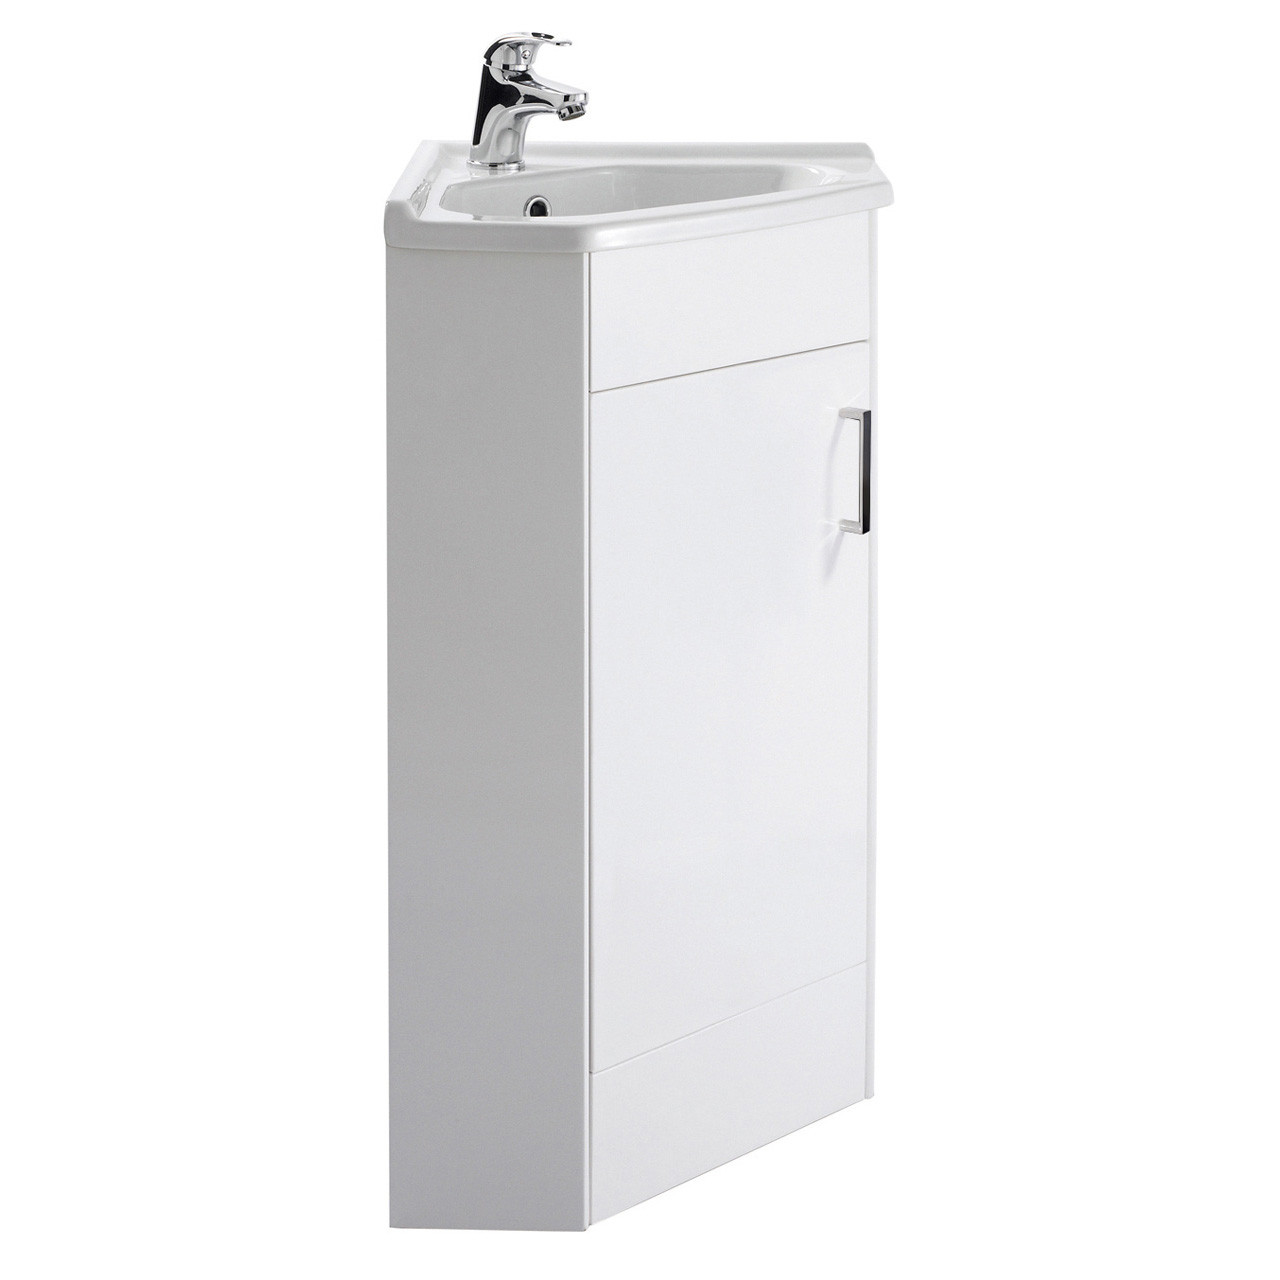 Premier White Gloss 555mm 1 Door Corner Vanity Unit and Basin - CU001